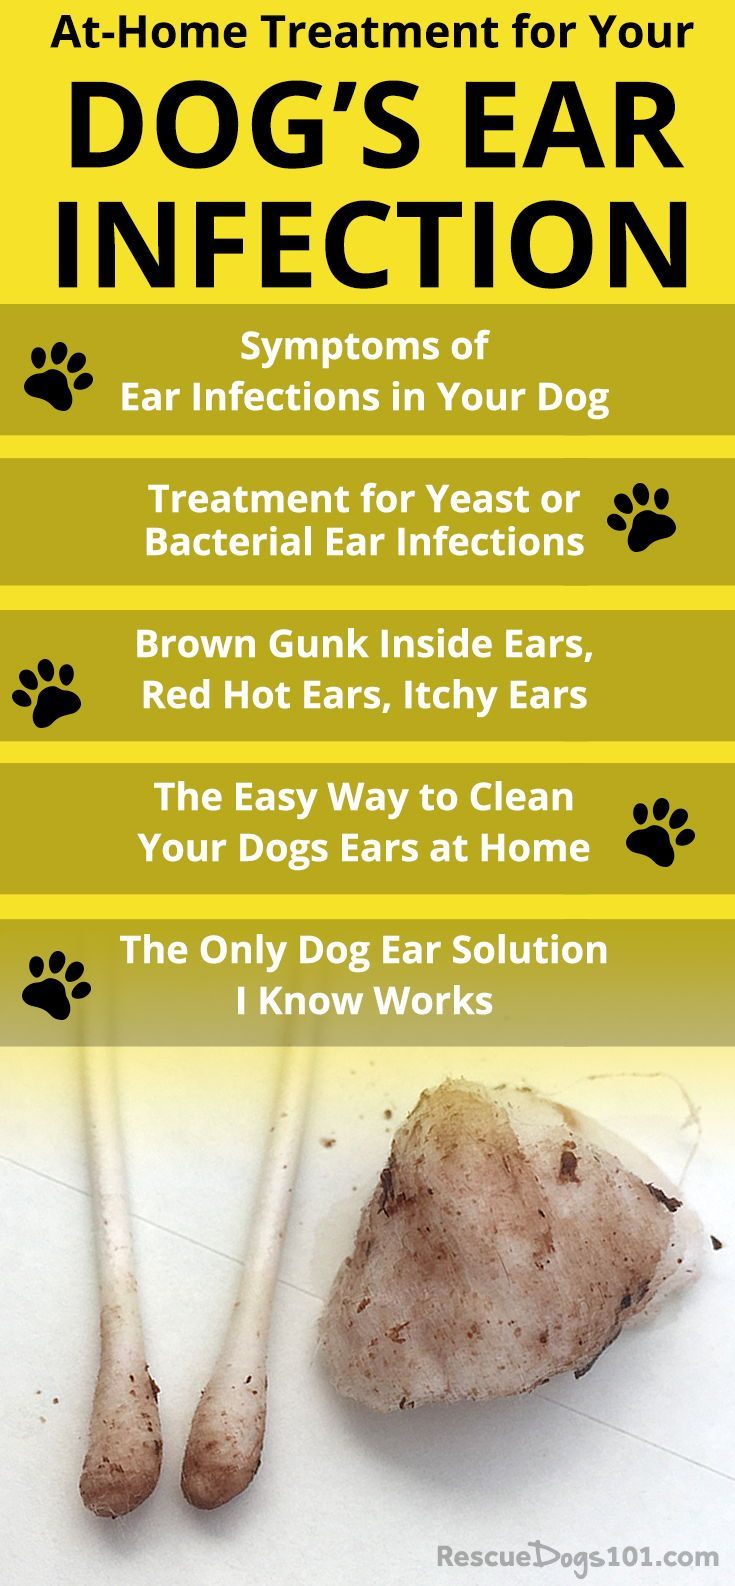 signs of ear infection in dogs dog ear infection dog ear yeast infection dog ear infection medicine dog ear infection treatment home remedy for dog ear infection dog yeast infection home remedy dog ear infection drops yeast in dogs ears dog ear yeast infection home remedy dog ear infection treatment over the counter otitis externa dog ear medicine for dogs dog ear yeast infection treatment signs of ear infection in dogs dog itchy ears home remedy dog ear canal ear problems in dogs dog ear infection remedy inner ear infection in dogs antibiotics for dog ear infection puppy ear infection dog shaking head no ear infection dog has ear infection dog ear wax dark brown dogs ears are red natural remedy for dog ear infection stinky dog ears my dog has an ear infection dog fungal ear infection dogs ears are cold dog ear infection home treatment dog itchy ears shaking head home remedy severe dog ear infection antibiotic ear drops for dogs german shepherd ear infection over the counter ear infection medicine for dogs chronic ear infection in dogs ear solution for dogs bacterial dog ear infection my dogs ears are red osurnia for dogs golden retriever ear infection ear treatment for dogs dog ear infection mites otitis in dogs home remedies for dogs ears dog ear fungus canine ear infection ear medication for dogs french bulldog ear infection dog ear infection meds smelly dog ears home remedy ear drops for dogs ear infection ecoears for dogs dog ear pain home remedies for cleaning dogs ears dog ear antibiotic dog ear infection medicine petsmart ear ointment for dogs dog ear irritation dog fungus home remedy puppy yeast infection cocker spaniel ear infection otaxium ear drops my dog's ears are cold dog outer ear infection severe dog ear yeast infection ear meds for dogs pitbull ear infection best dog ear infection medicine cure dog ear infection shih tzu ear infection types of dog ear infections dog ear ache otitis externa dog treatment lab ear infection pug ear infection dog ear i